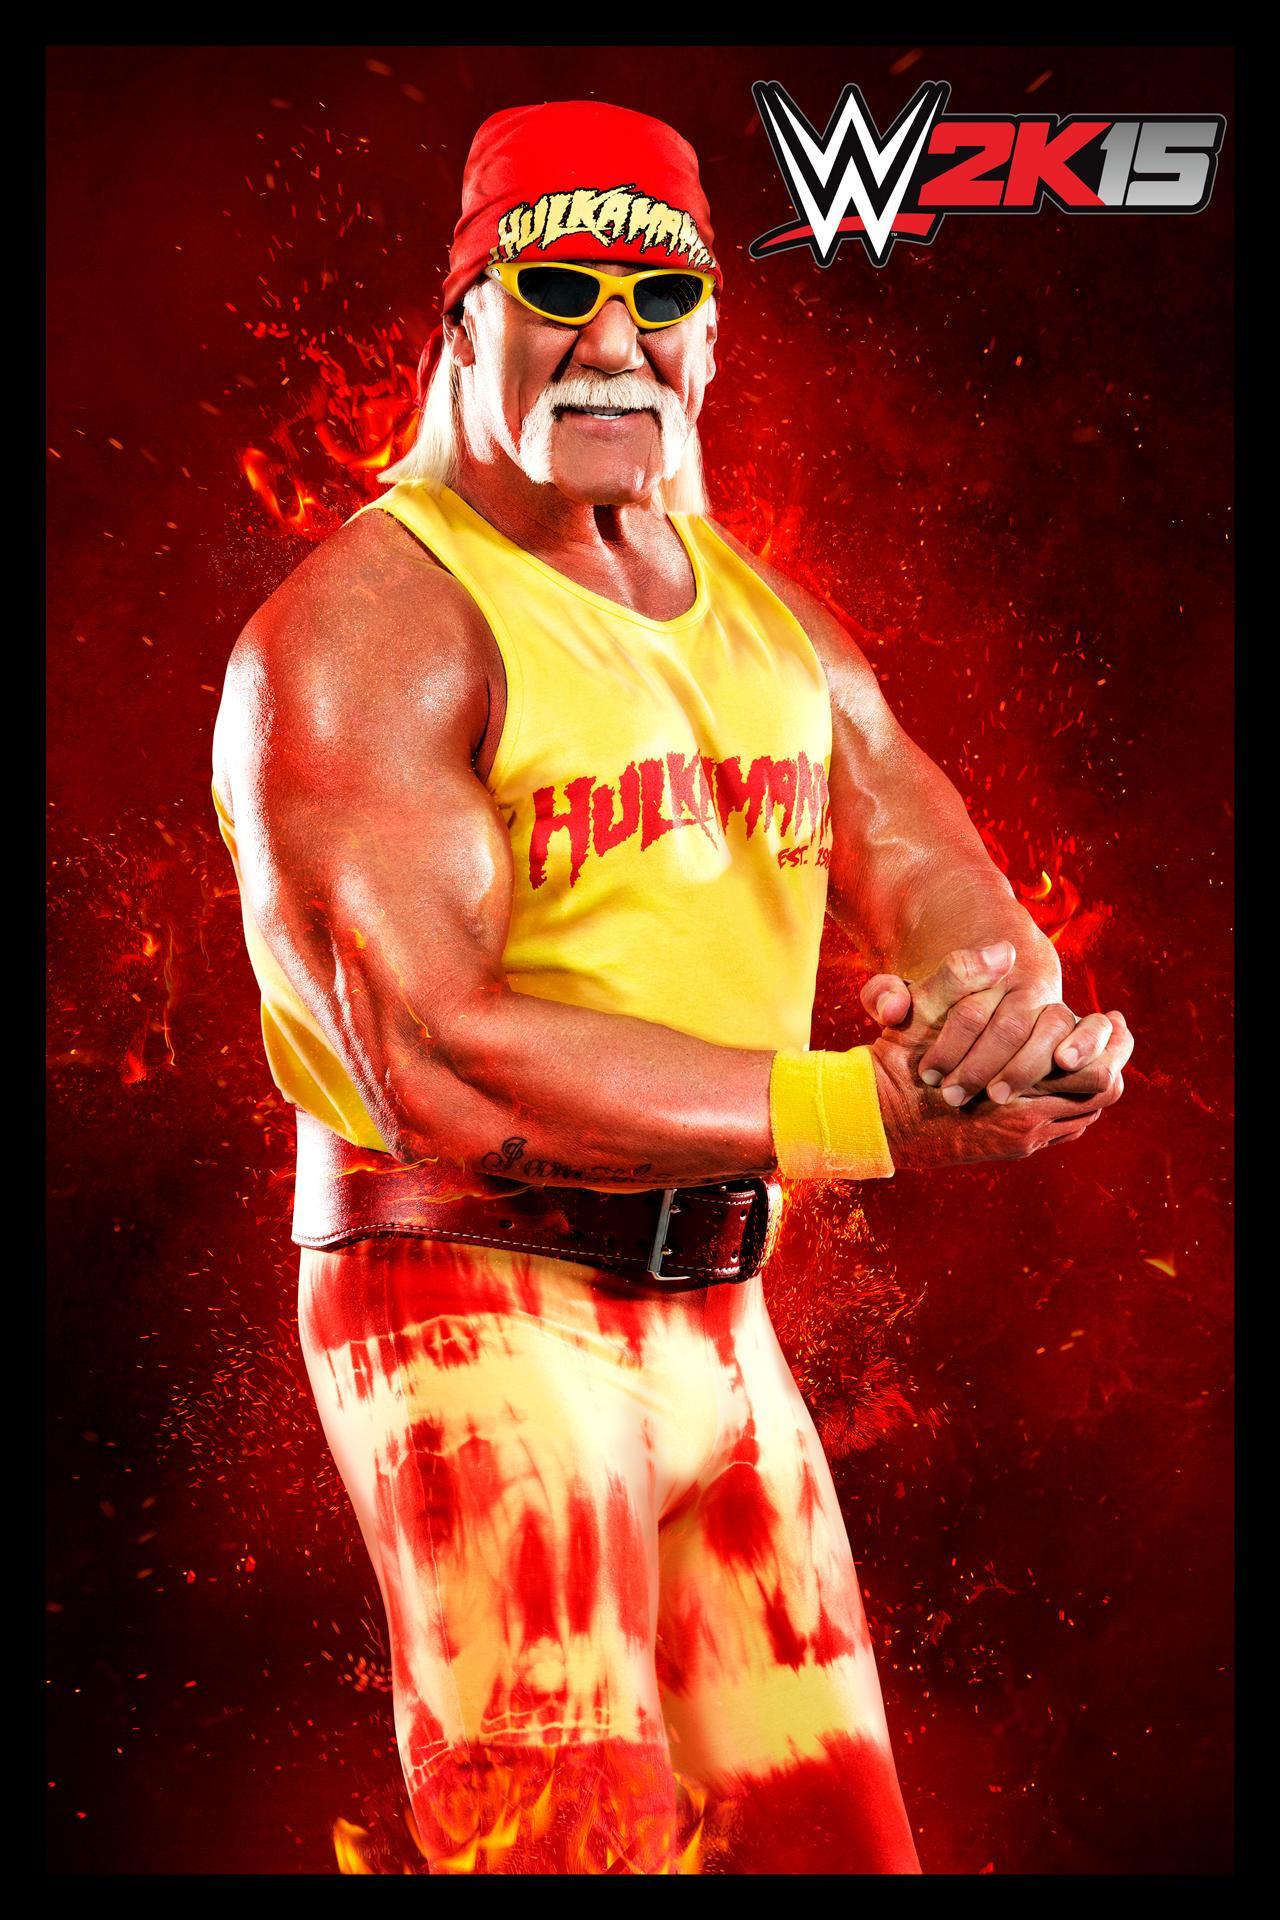 Hogan Hulk Wwe 2k15 Quothulkamania Quot Collector 39s Edition Details Revealed